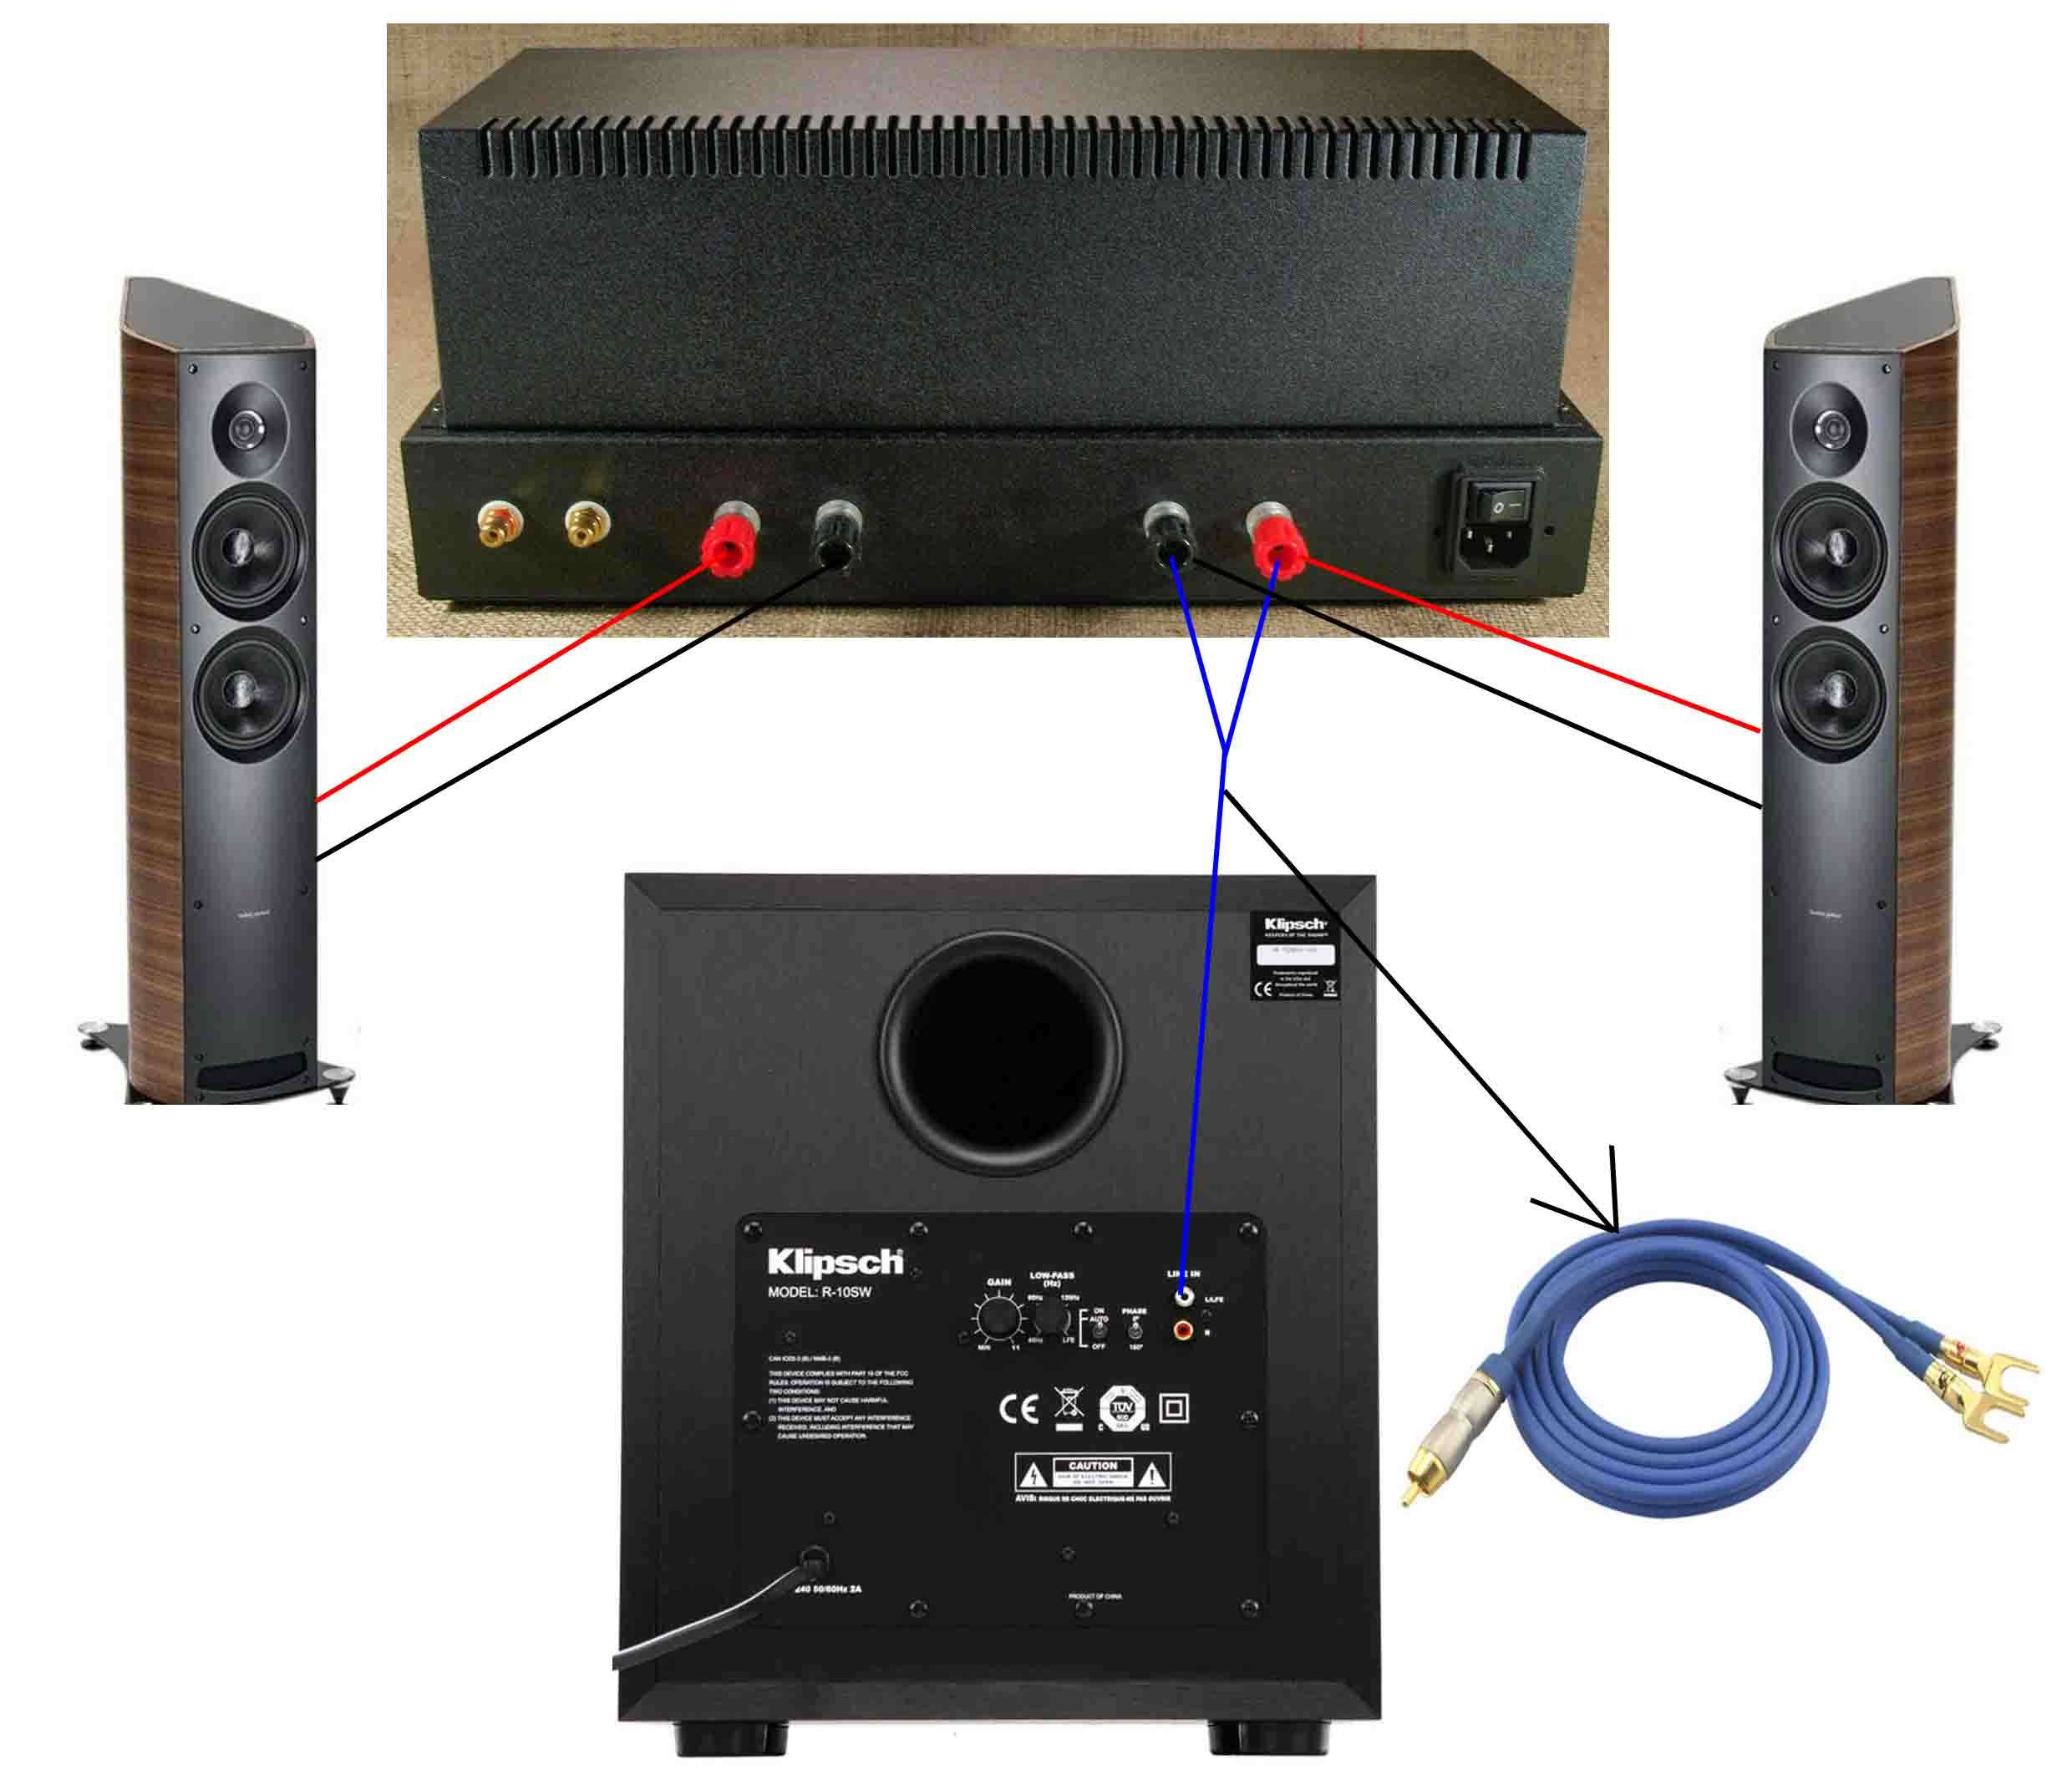 How to connect a subwoofer to an amplifier